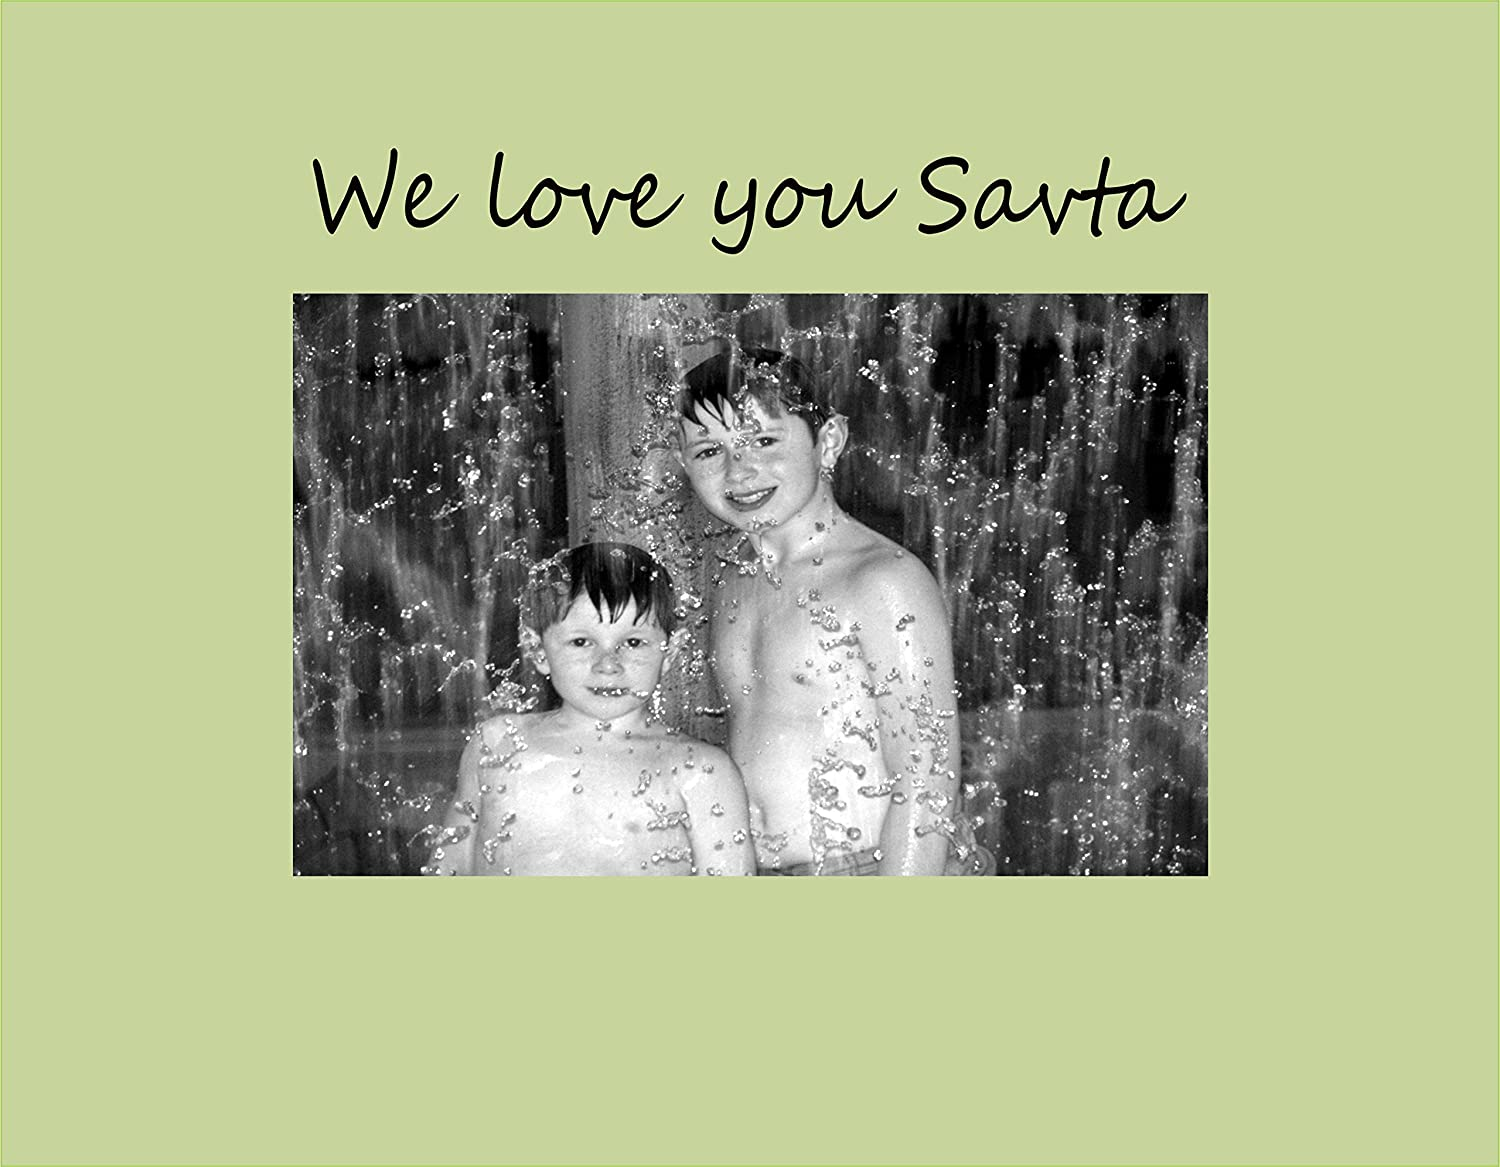 Small Infusion Gifts 9009-SO We Love You Savta Photo Frame Oyster